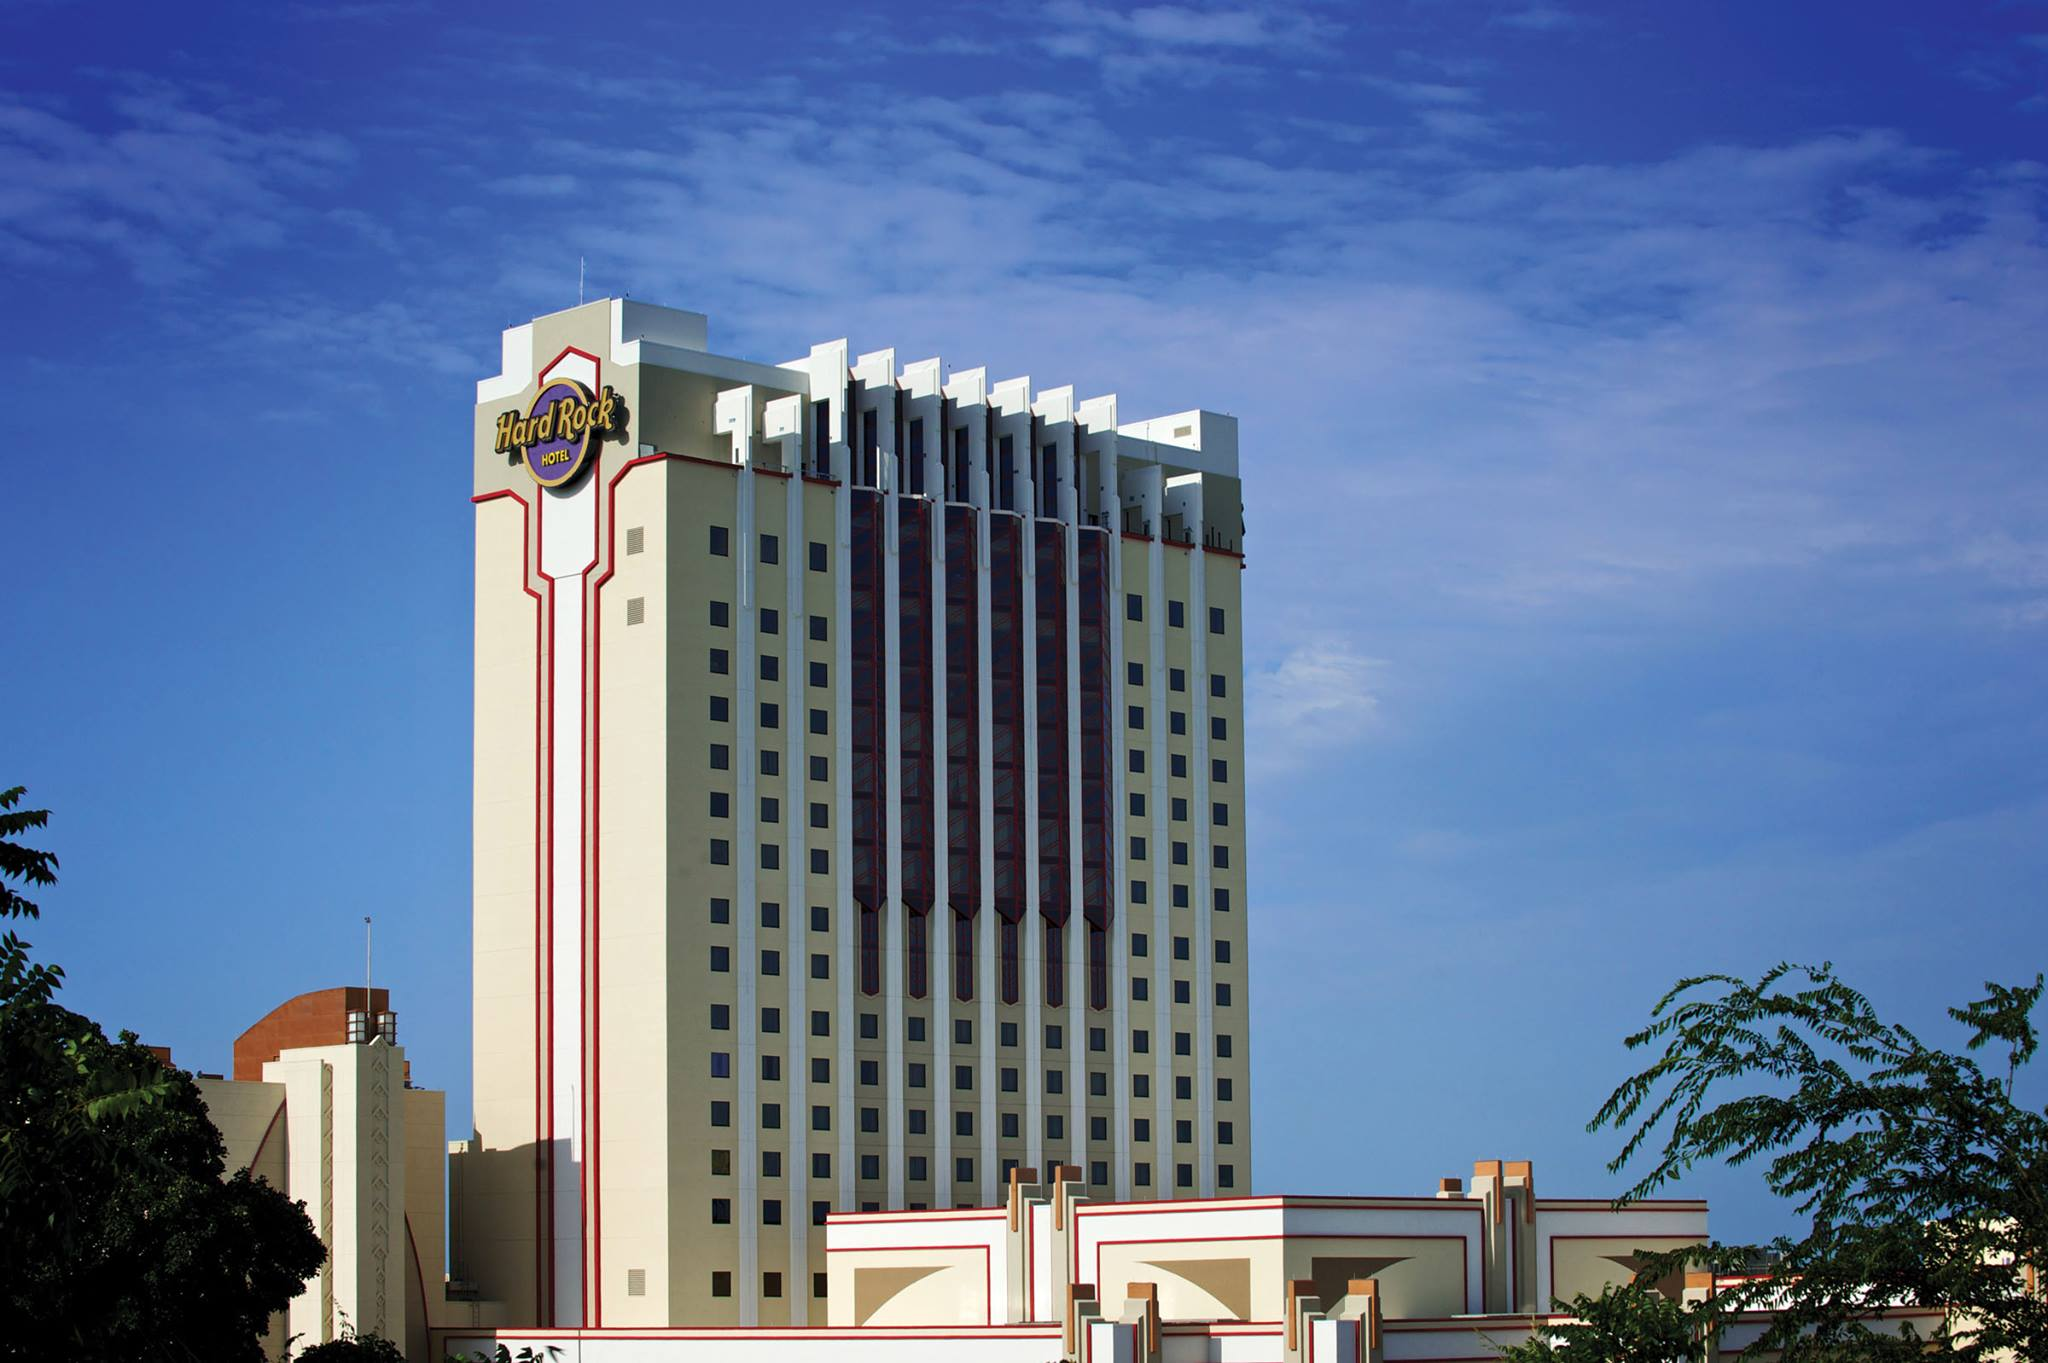 Tulsa ok indian casino sanibel gambling cruises